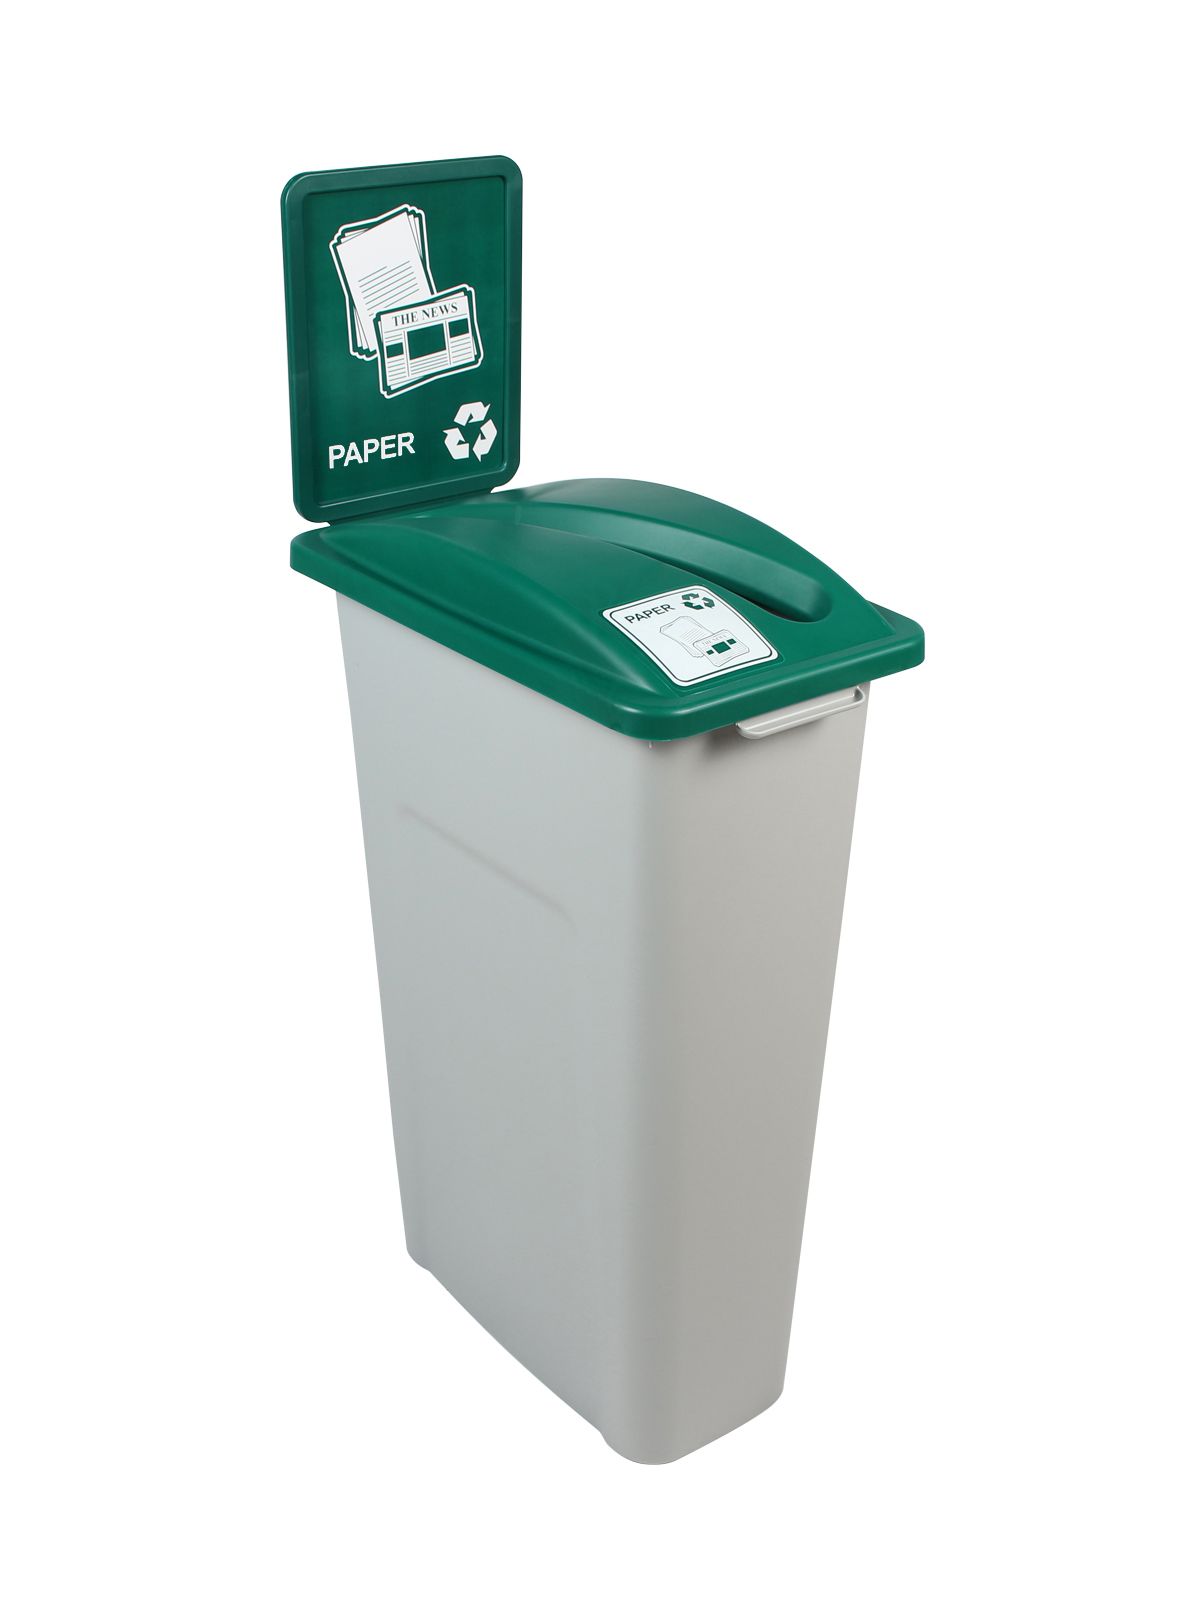 WASTE WATCHER - Single - Paper - Slot - Grey-Green